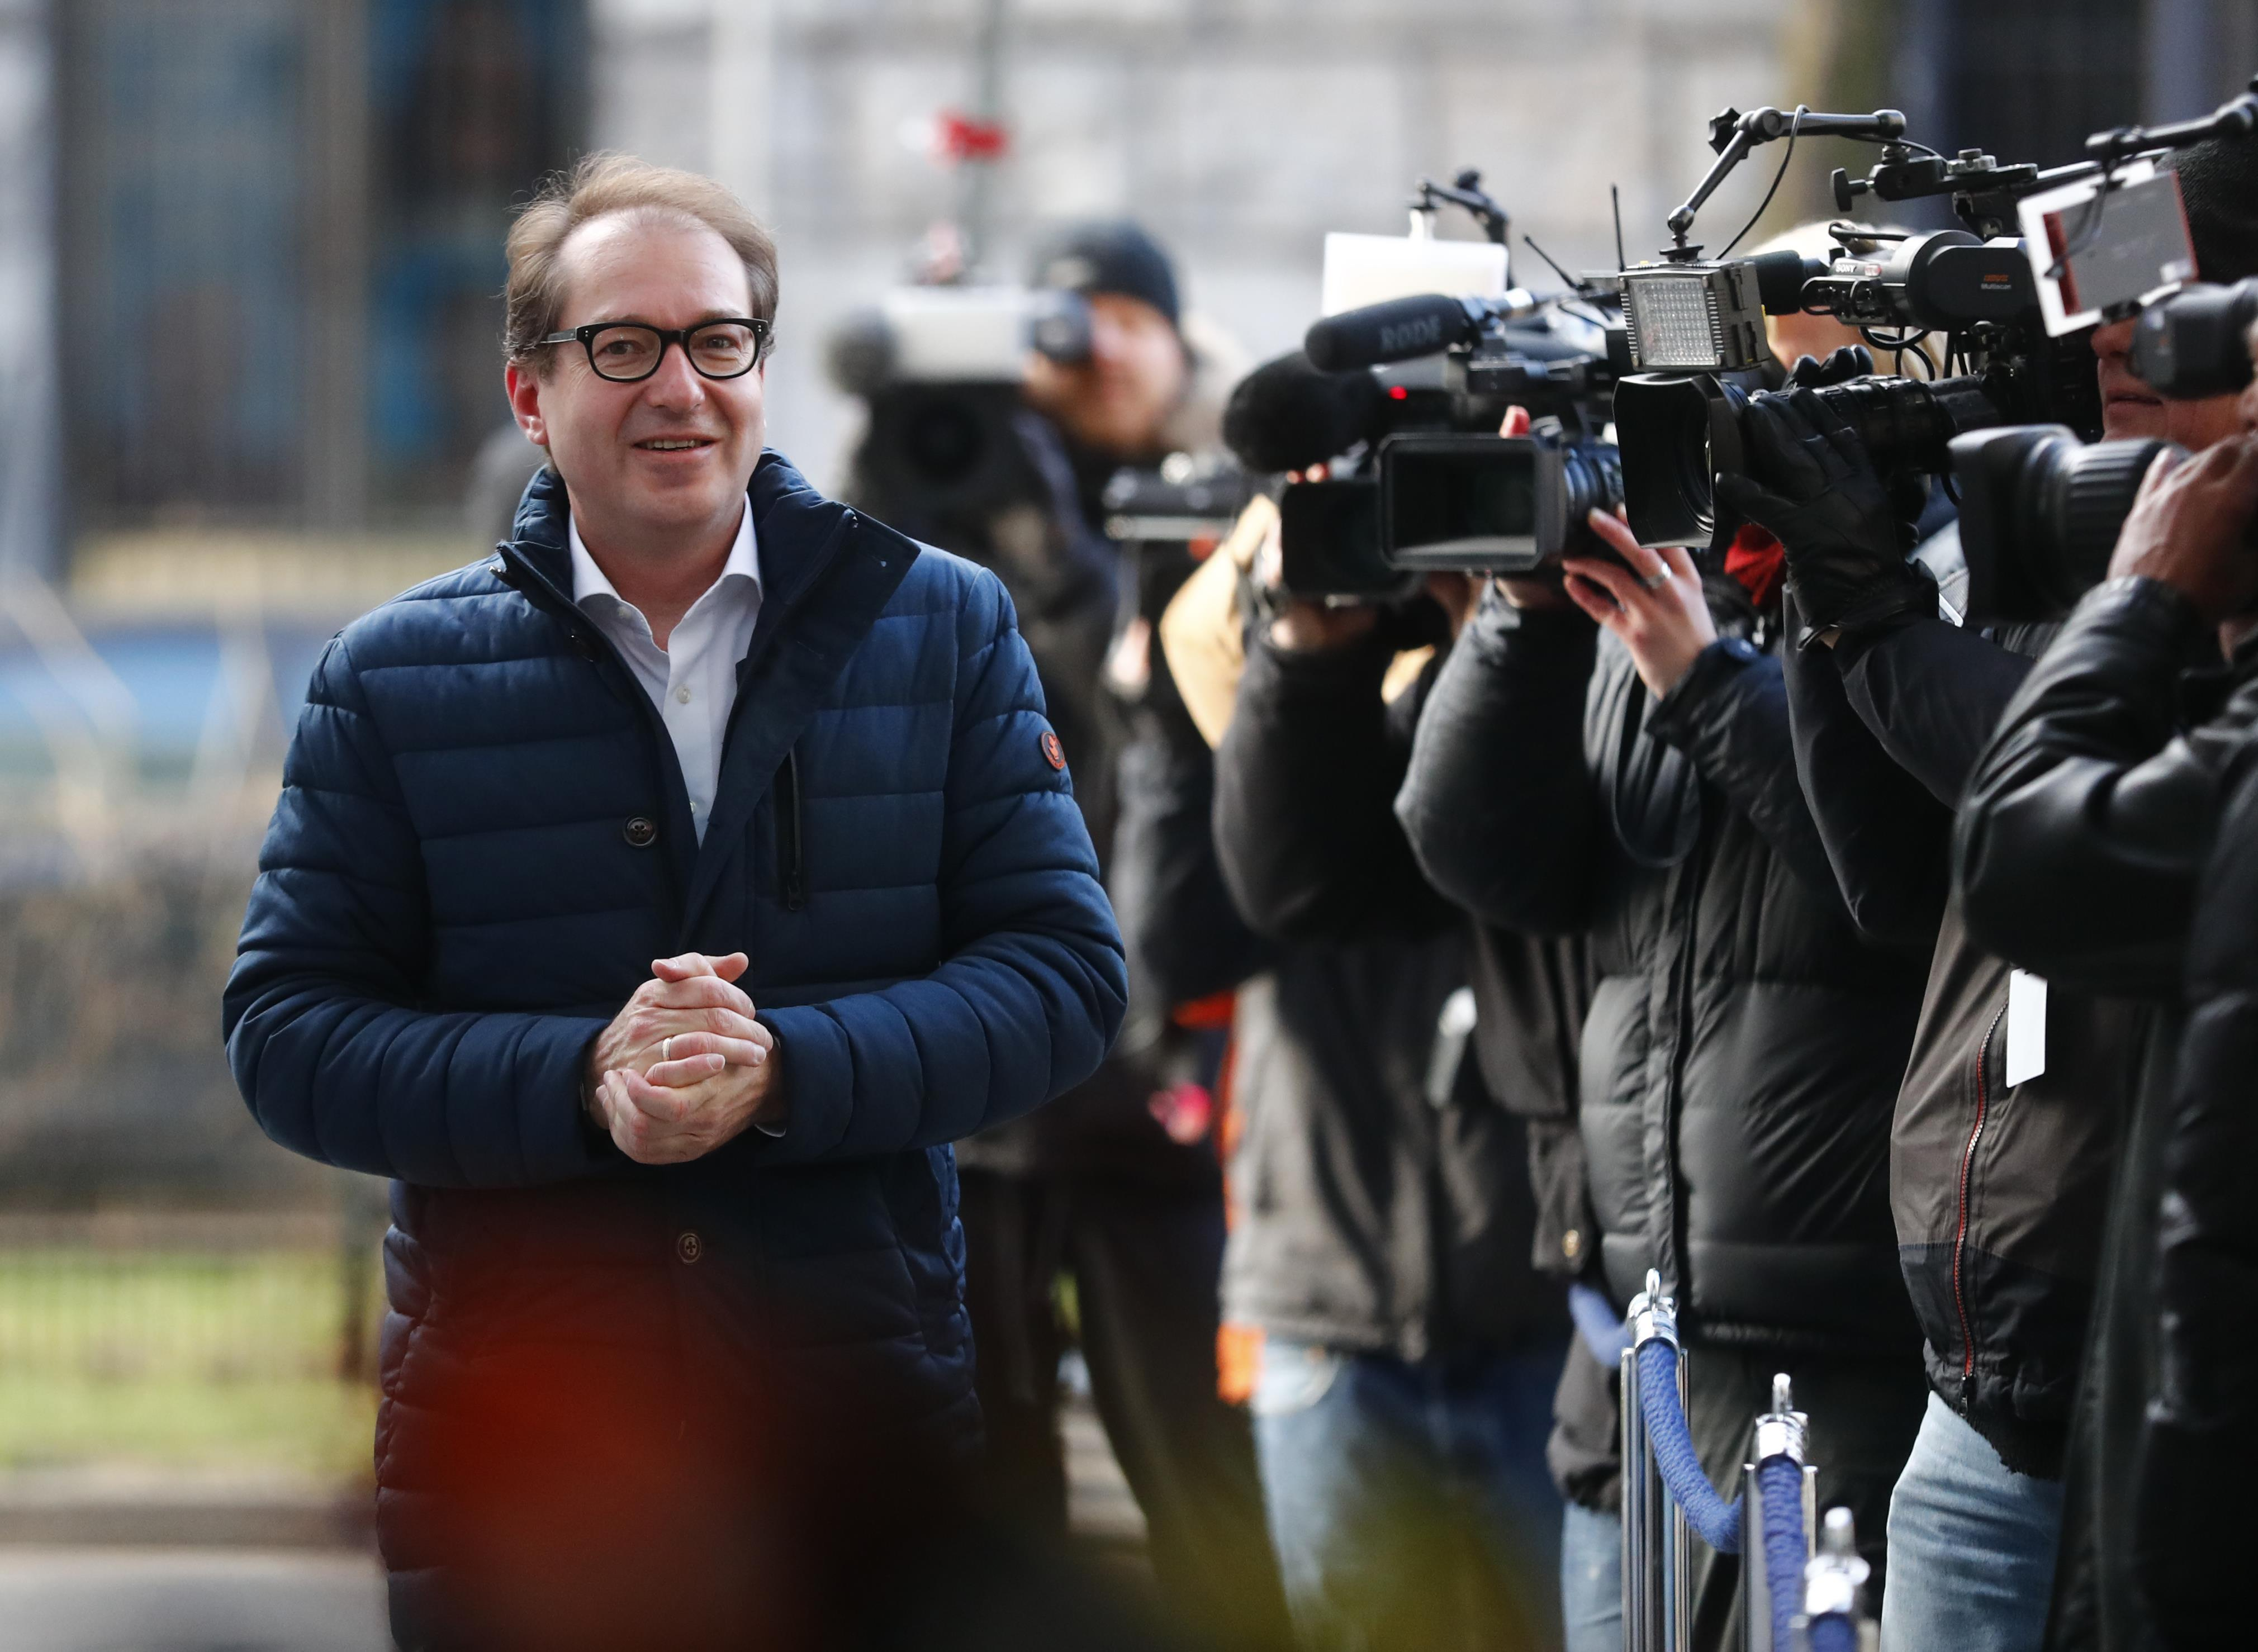 Alexander Dobrindt of the Christian Social Union (CSU) arrives for coalition talks at the Social Democratic Party (SPD) headquarters in Berlin, Germany, February 5, 2018. Hannibal Hanschke